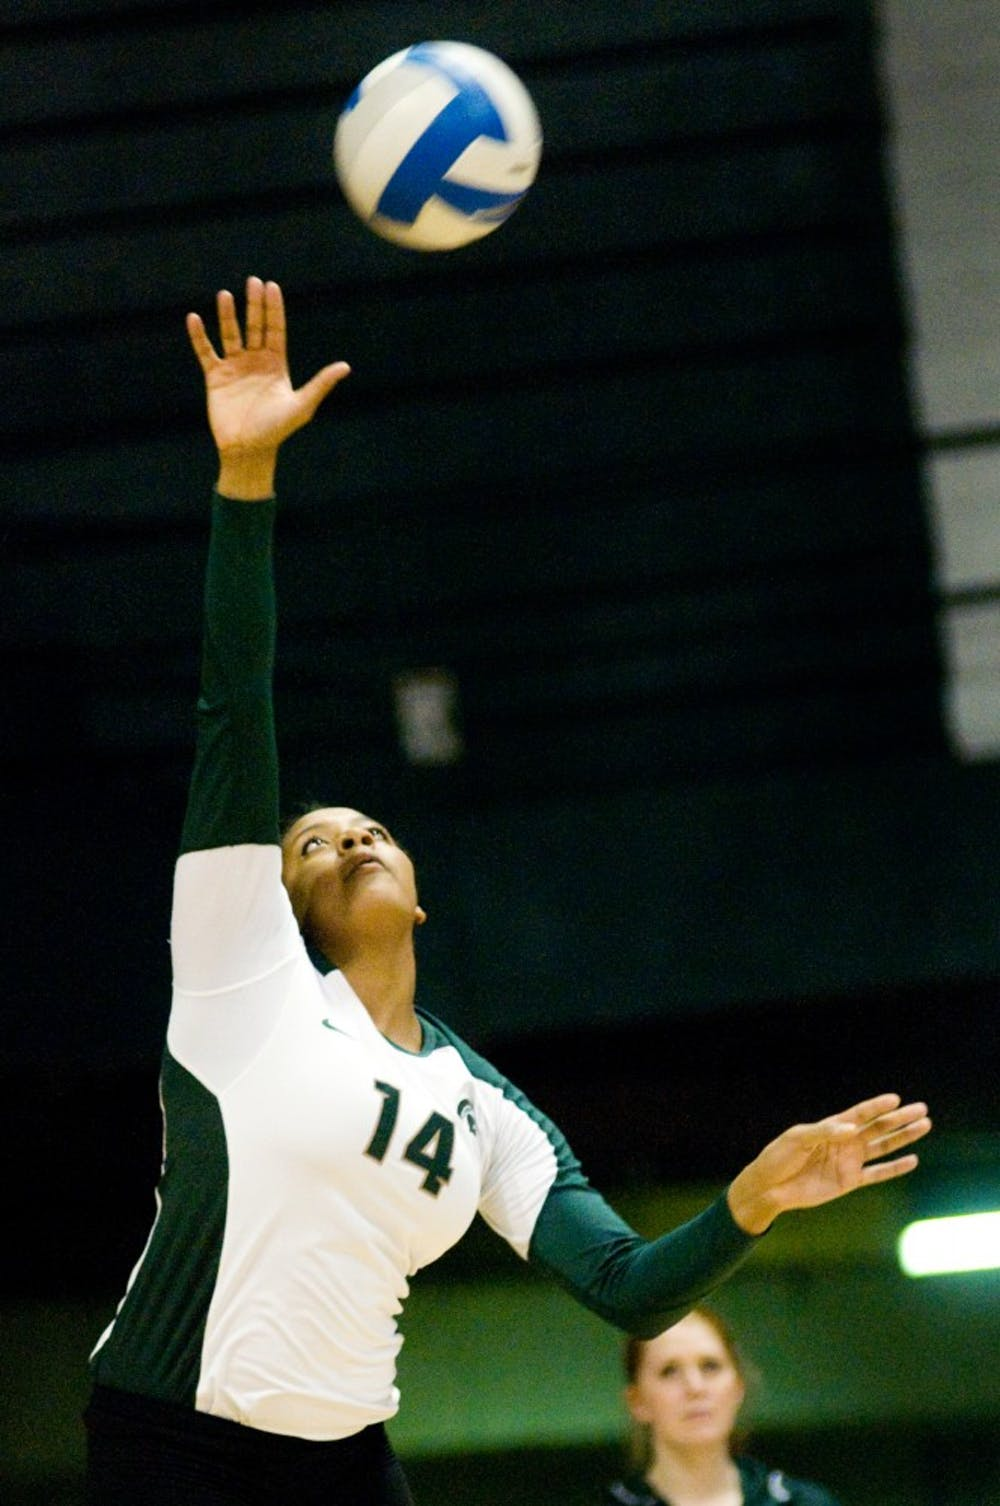 Freshman middle blocker Jazmine White makes a serve Saturday night at Jenison Field House. The Spartans defeated the Wildcats, 3-2. Justin Wan/The State News